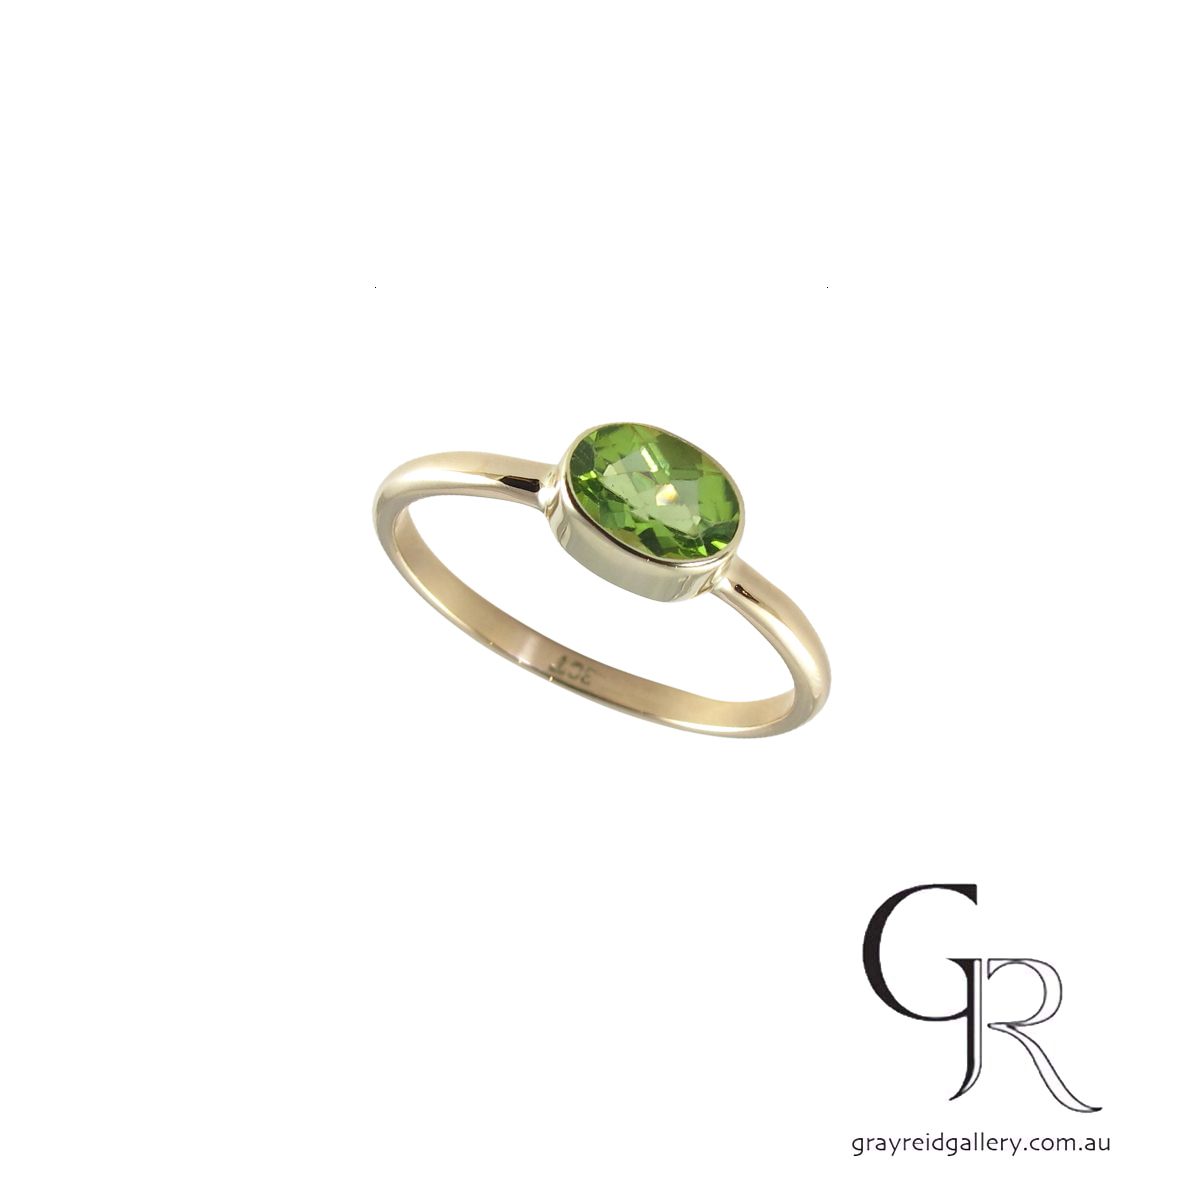 custom made 9ct gold chrysoprase ring gray reid gallery 6778 A.jpg